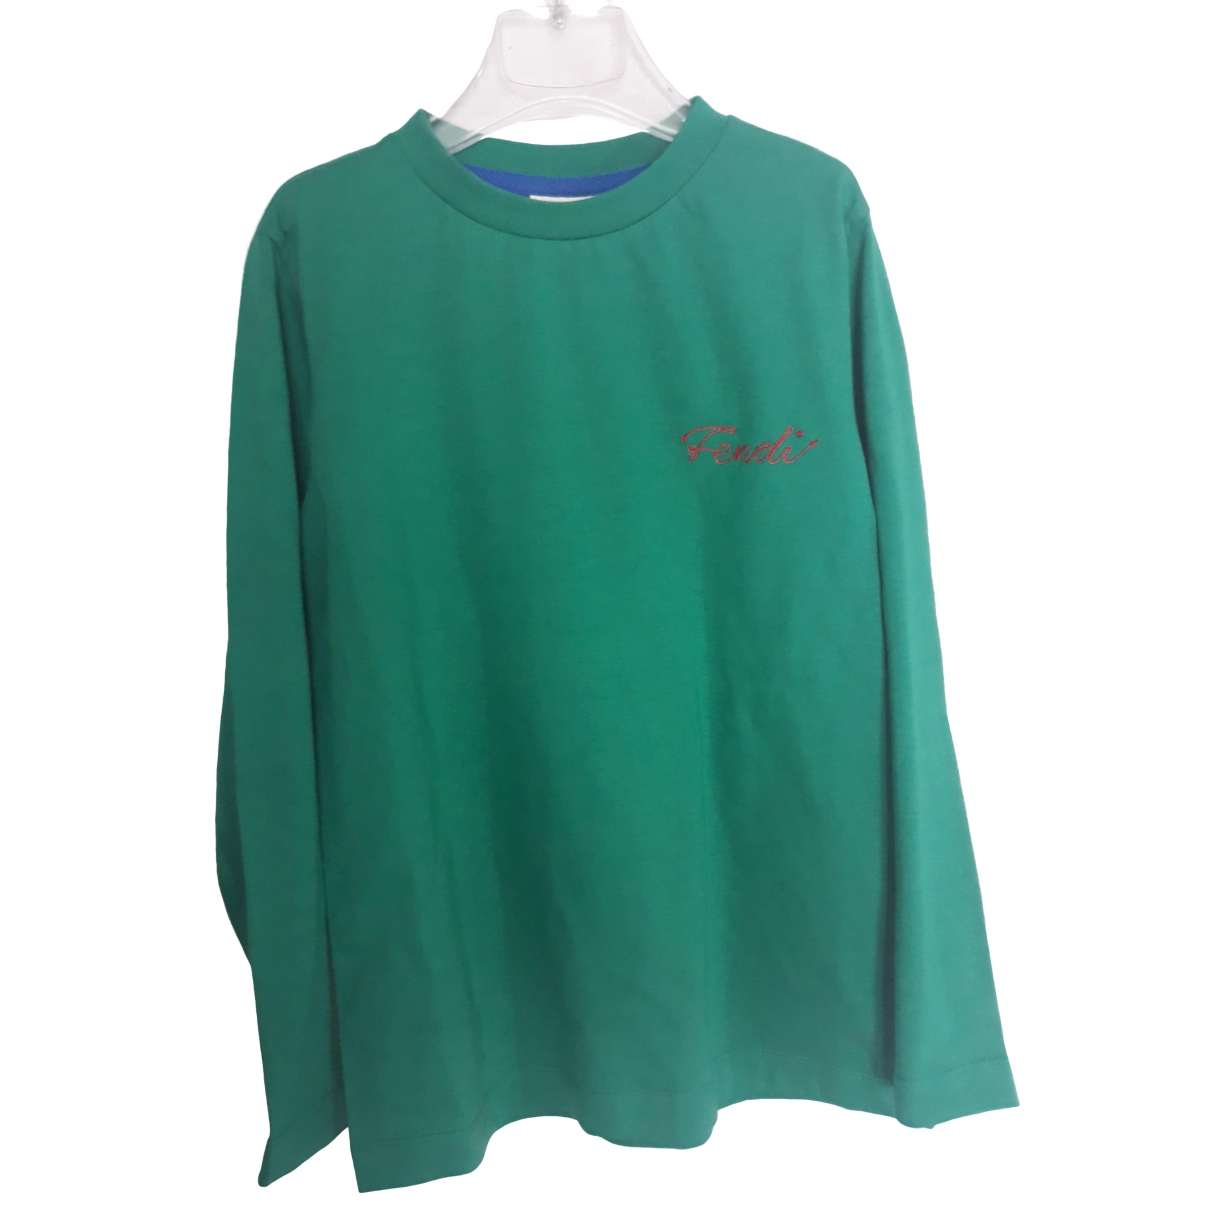 Fendi \N Green Cotton Knitwear for Kids 8 years - until 50 inches